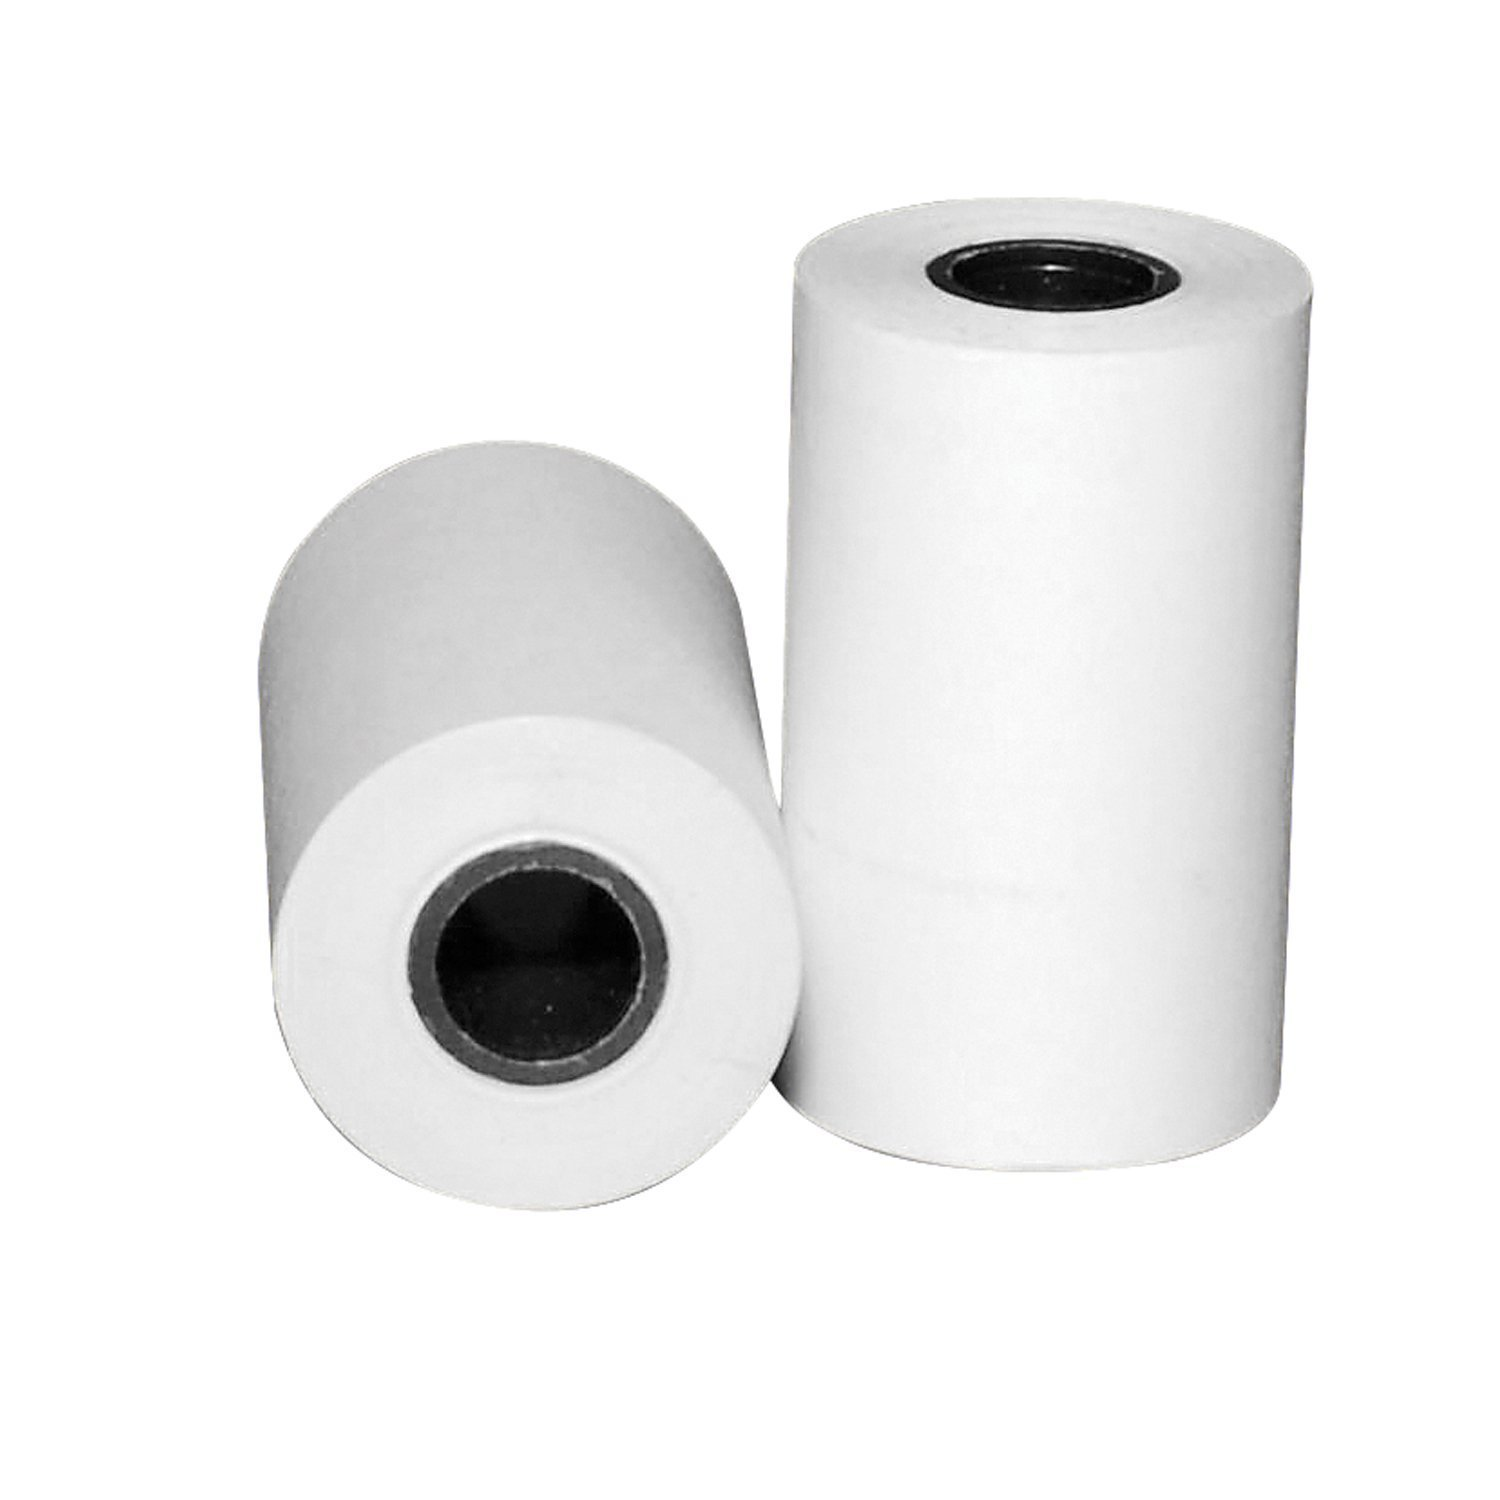 Cheap Thermal Rolls 2 1 4, find Thermal Rolls 2 1 4 deals on